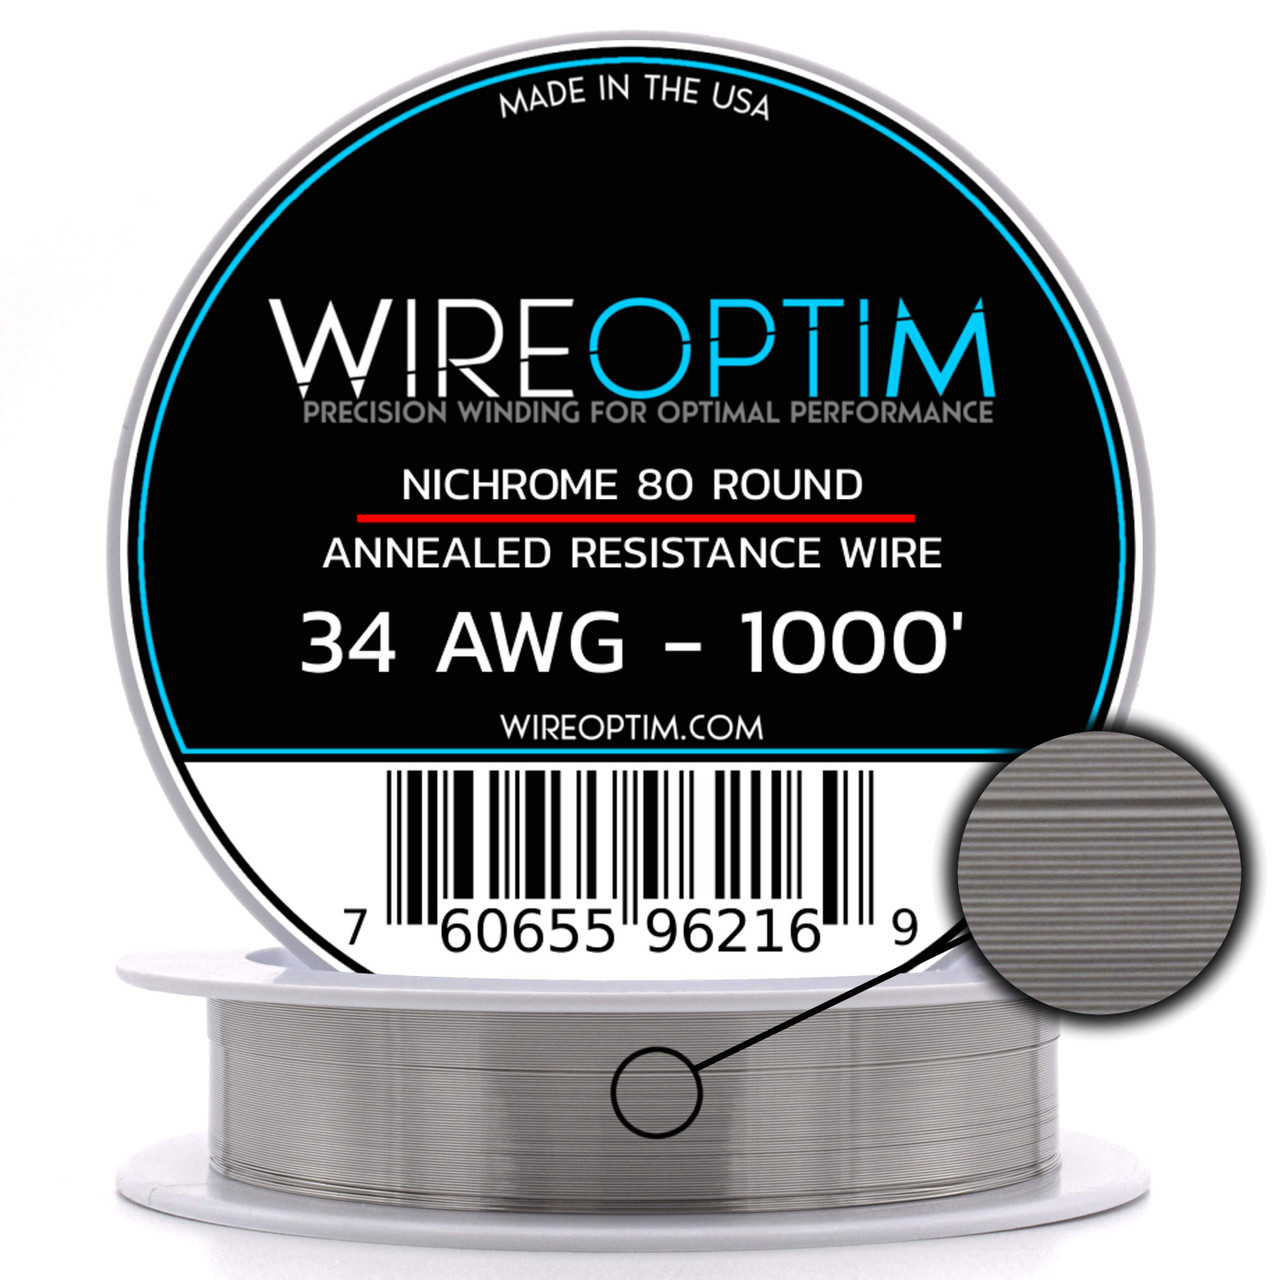 Ni80 wire 32 Gauge AWG Nichrome 80 Resistance Wire 1000' Length 1000ft